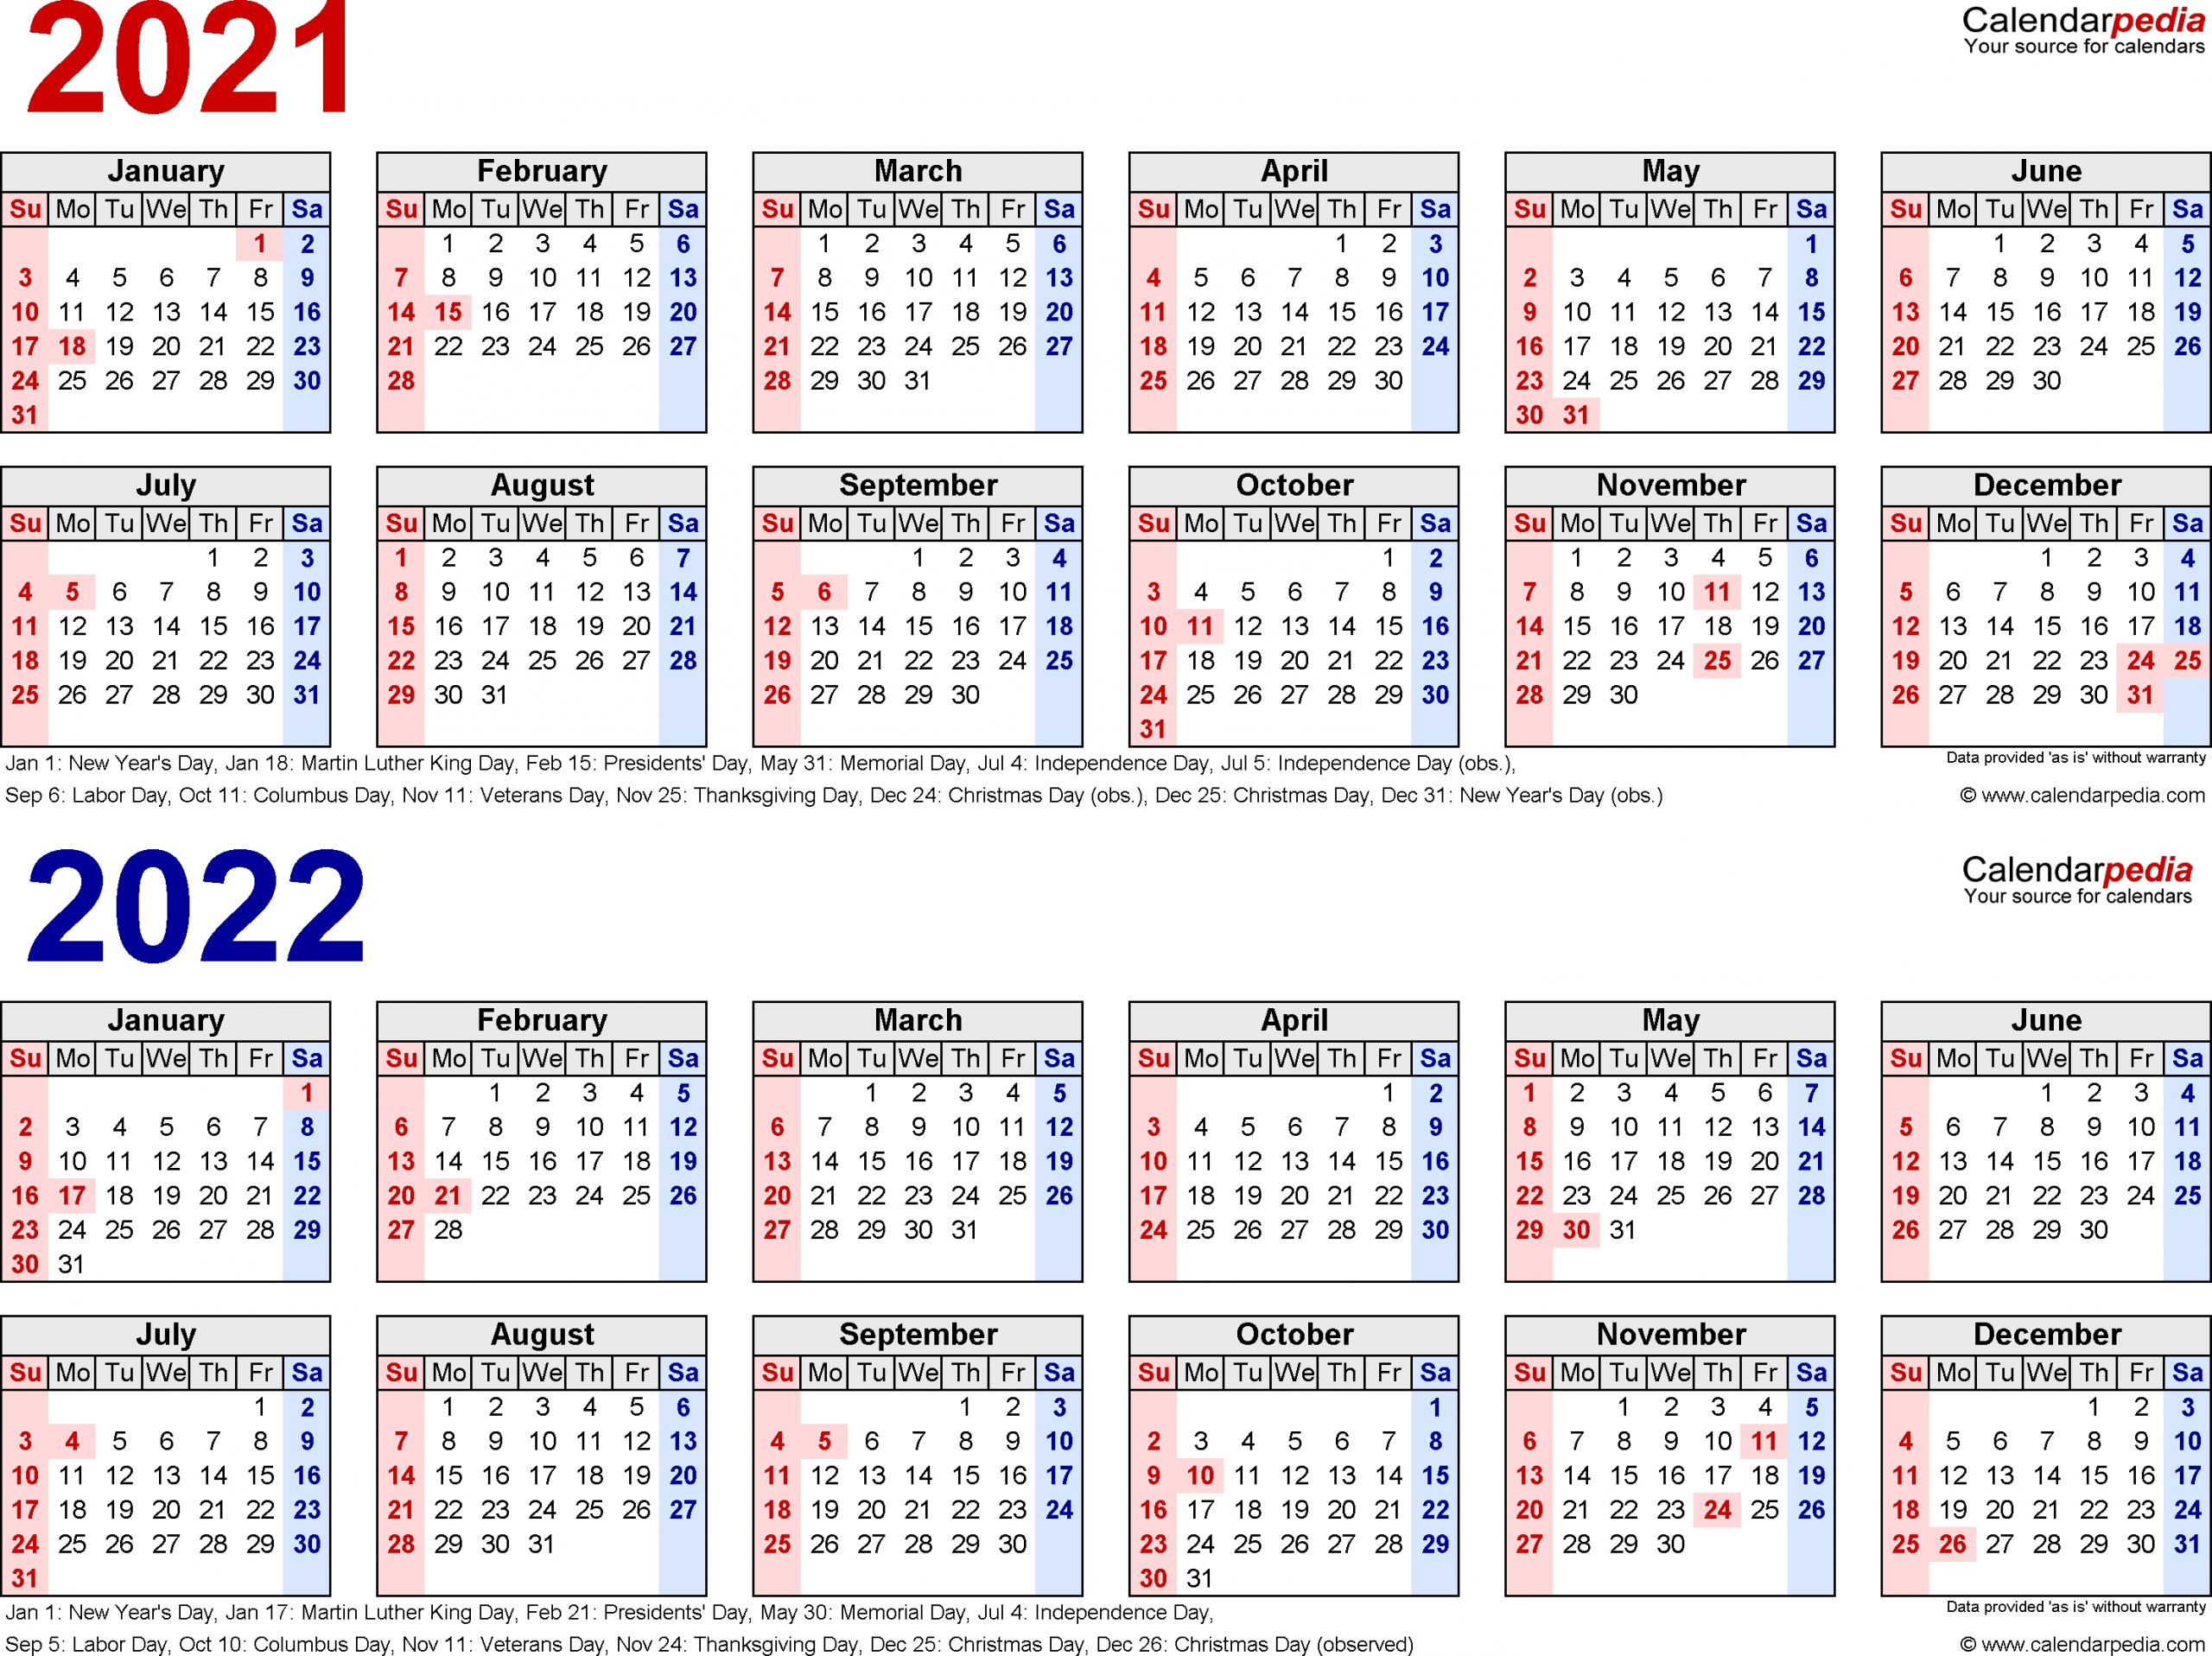 May Calendars For 2019 2020 2021 And 2022 Calendar